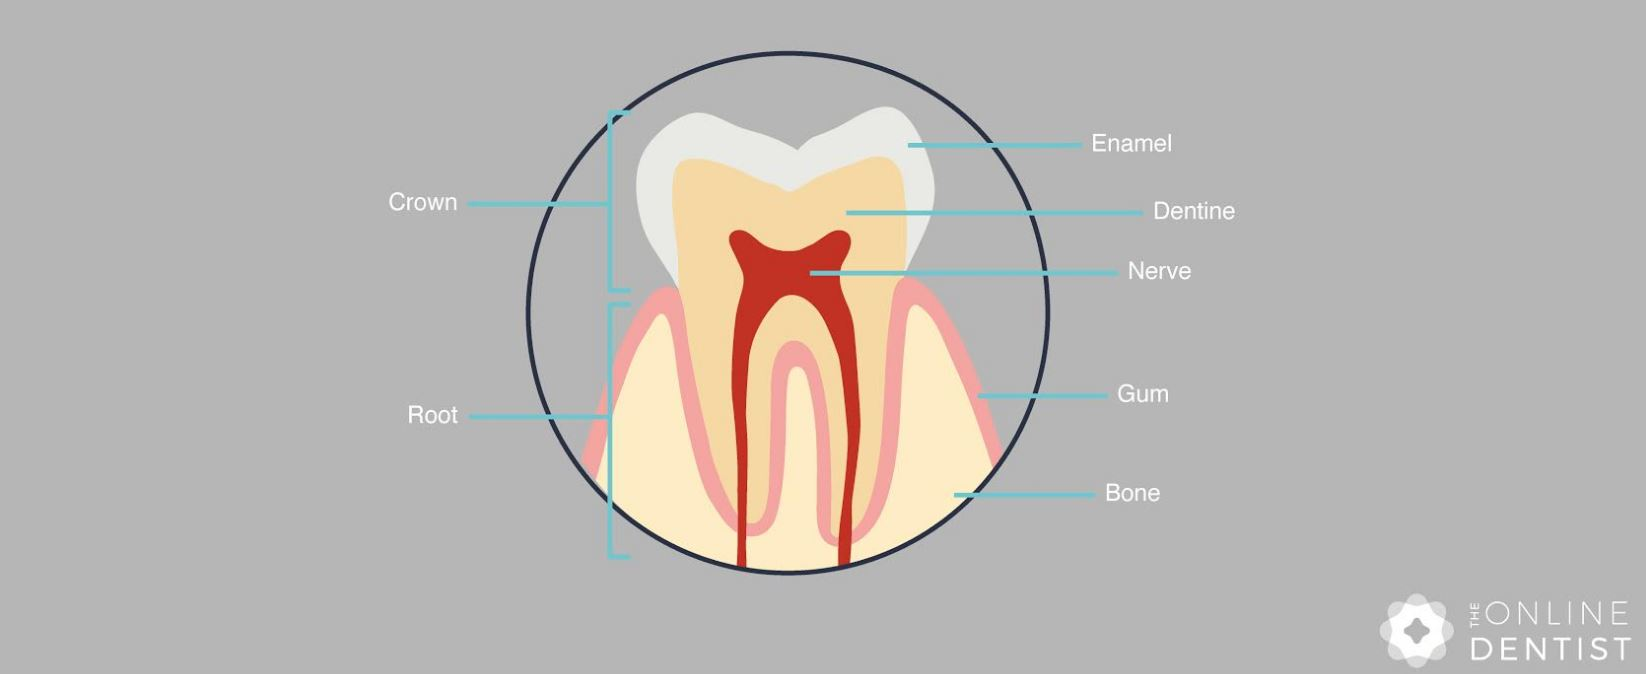 hight resolution of the outermost layer is called enamel and the layer below is called dentine the innermost area is called the pulp or nerve of the tooth tooth diagram